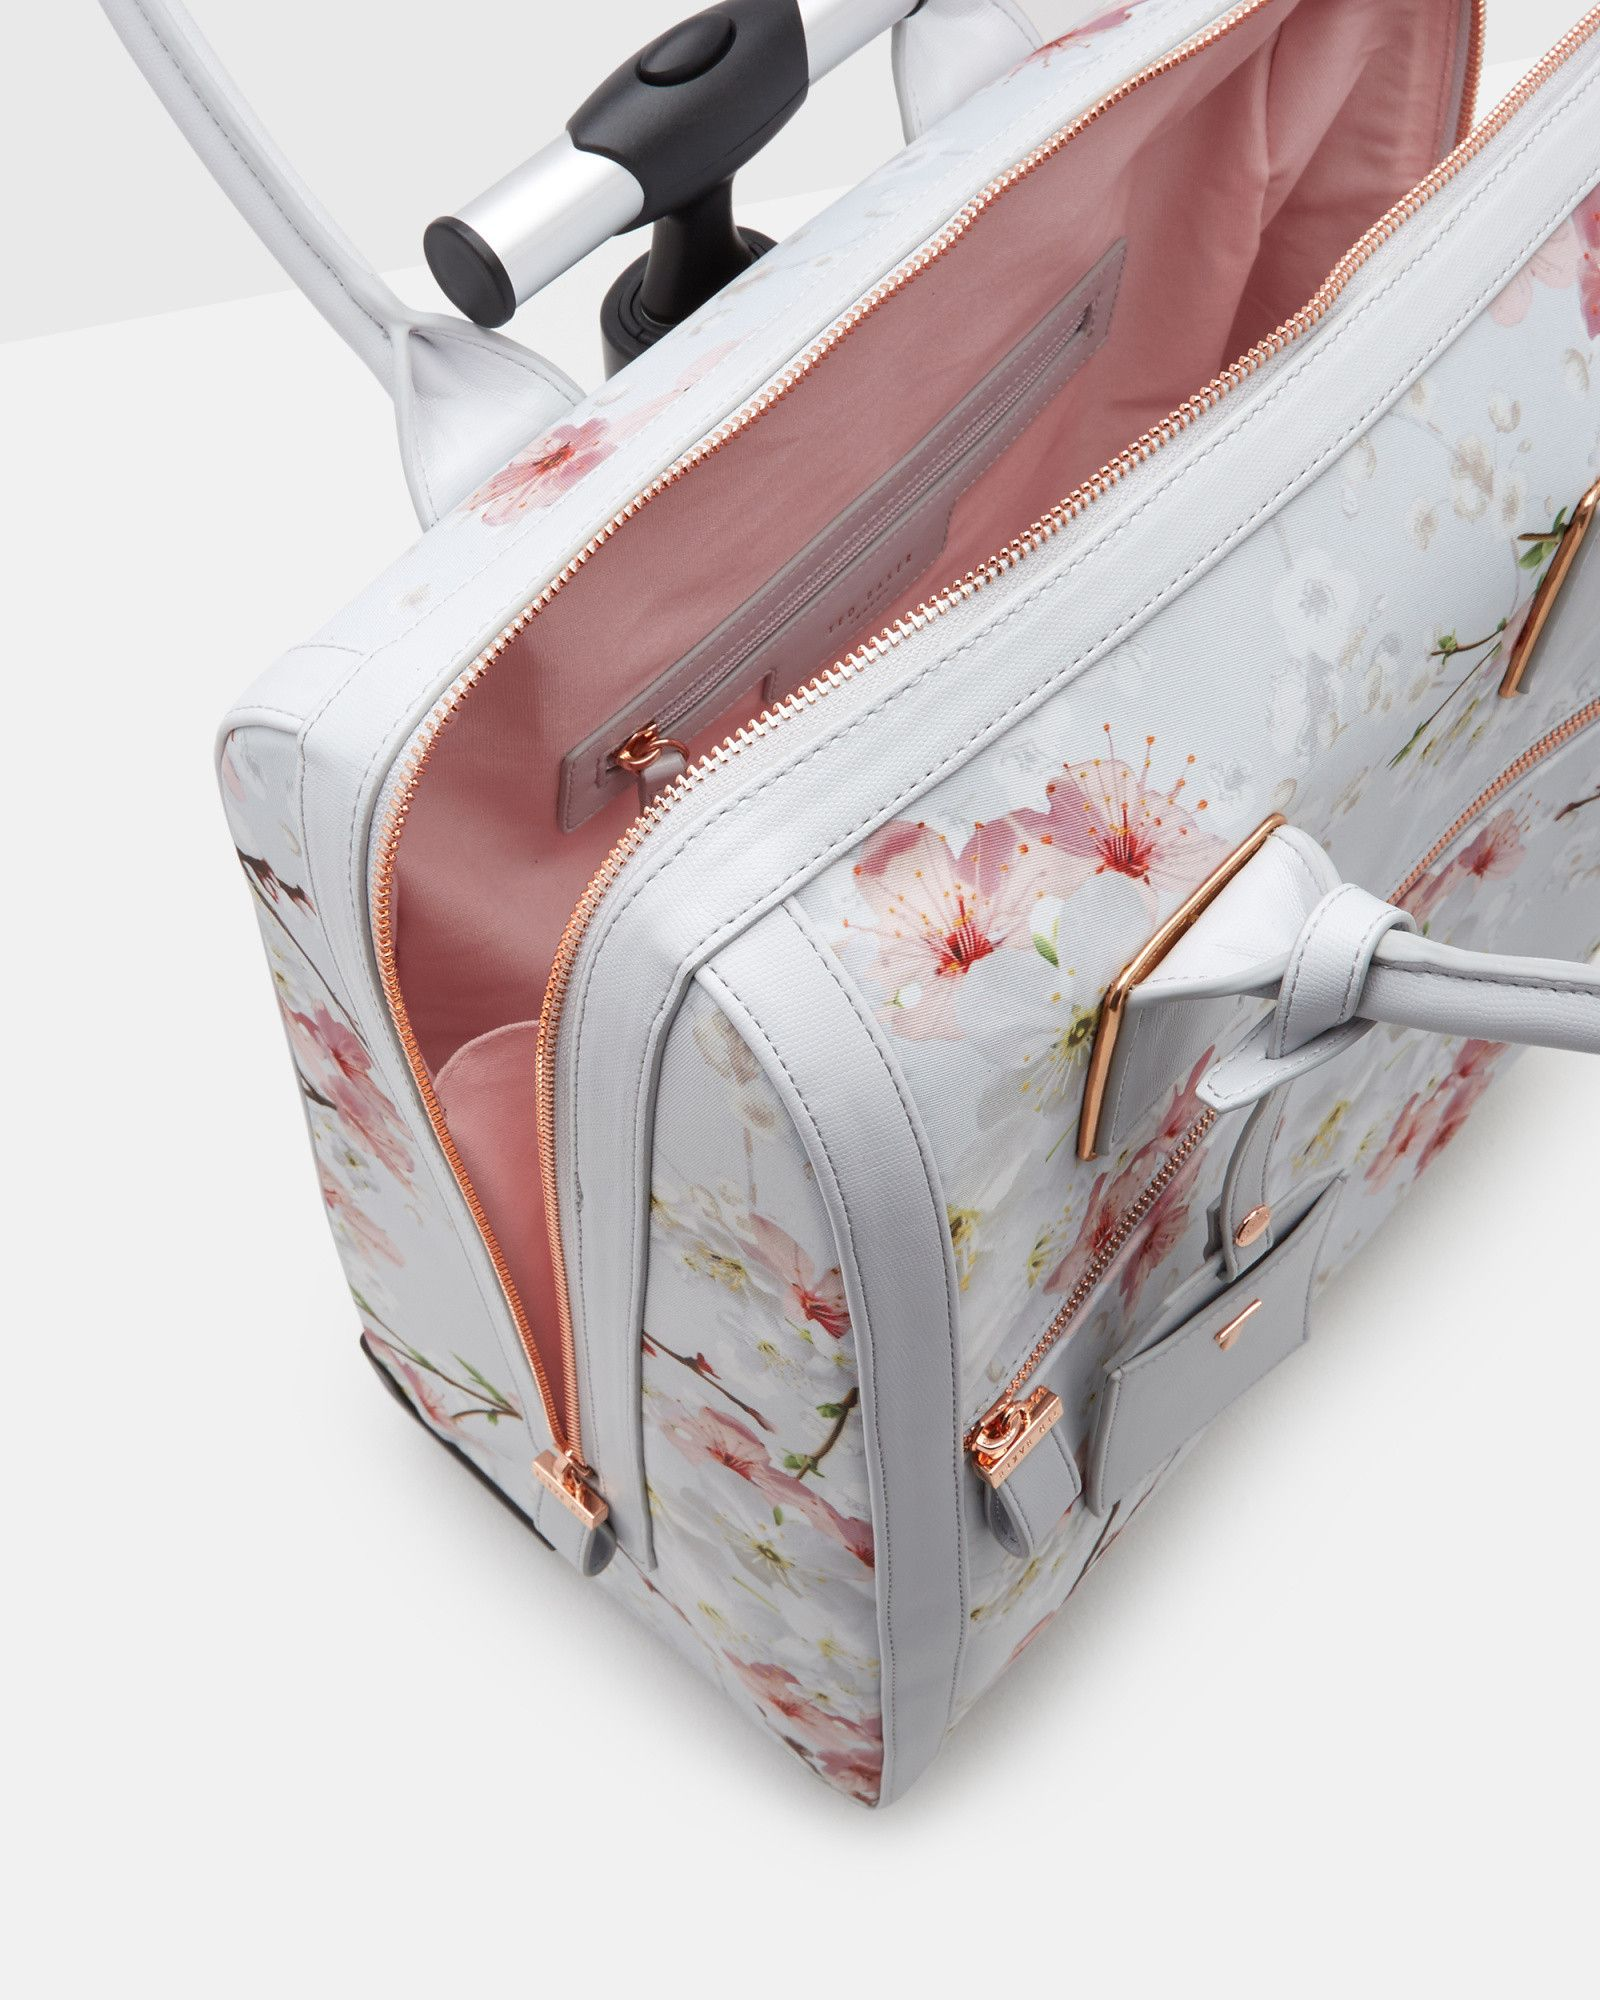 Or sleeping bags clothes pegs optional fairy lights optional - Oriental Blossom Travel Bag Light Grey Bags Ted Baker Uk